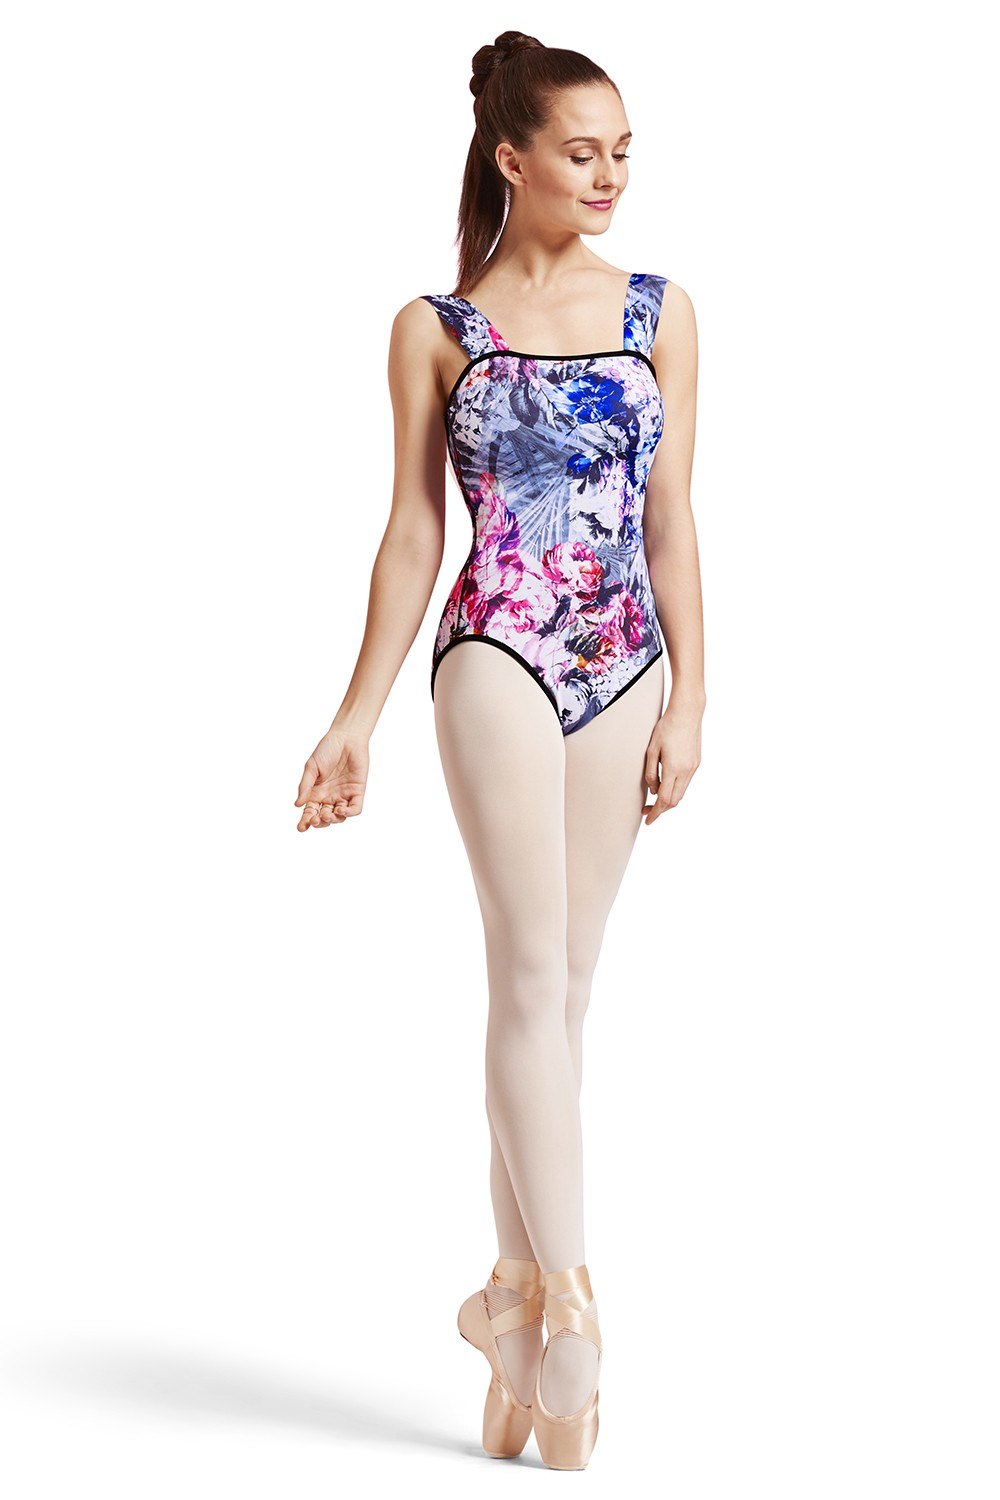 Naamah Print Women's Dance Leotards